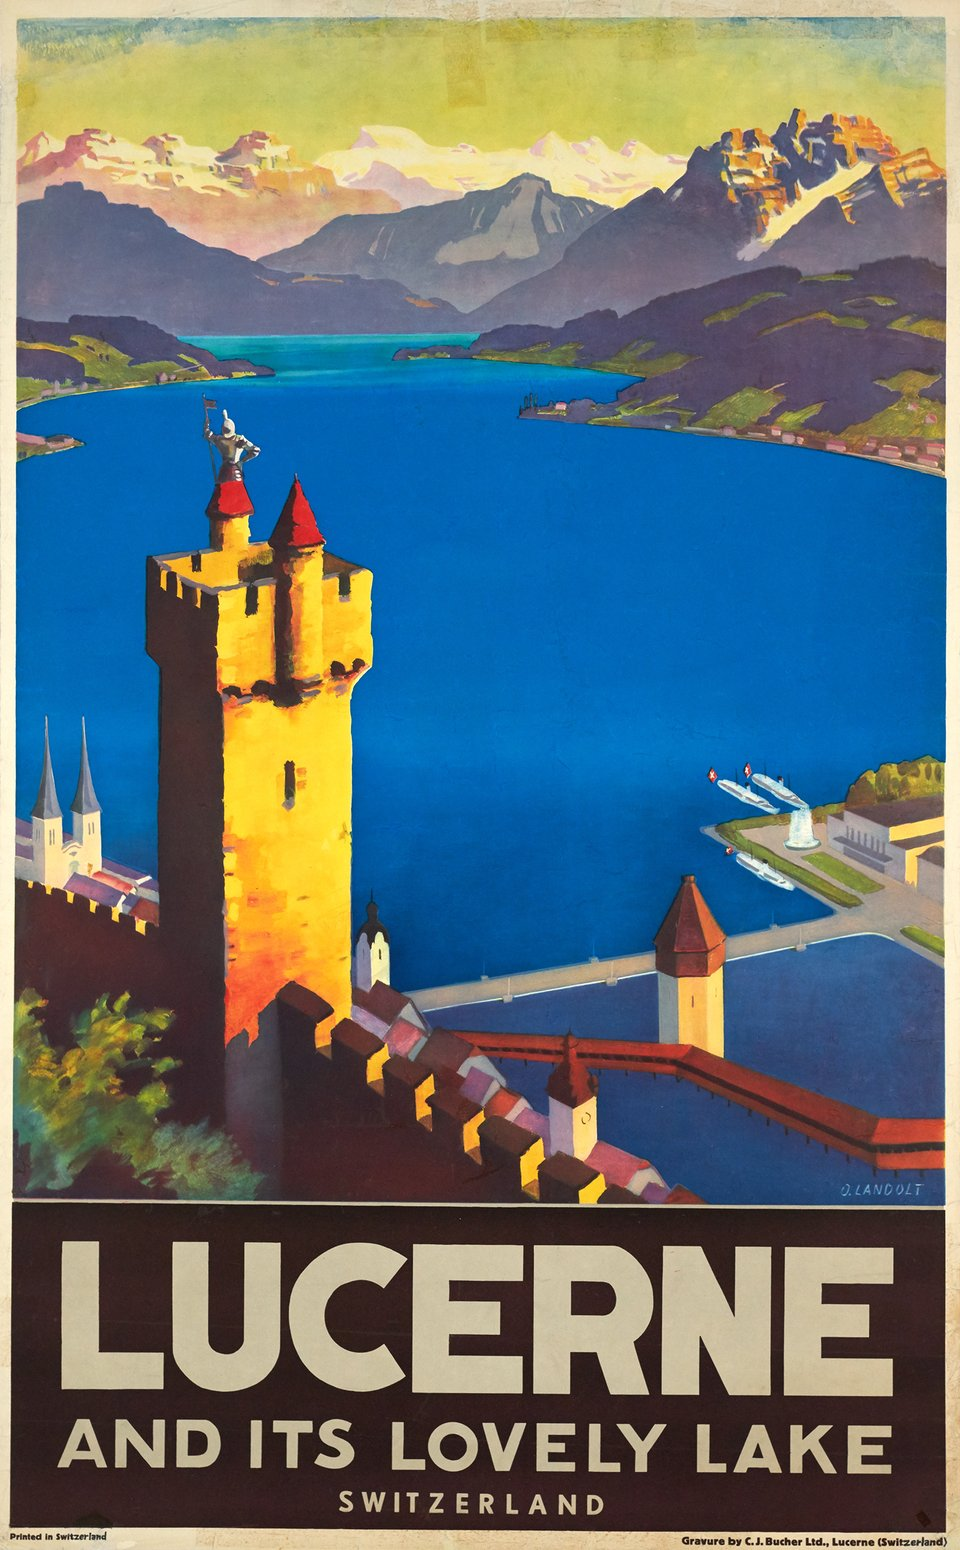 Lucerne and its lovely lake, Switzerland – Vintage poster – Otto LANDOLT – 1935